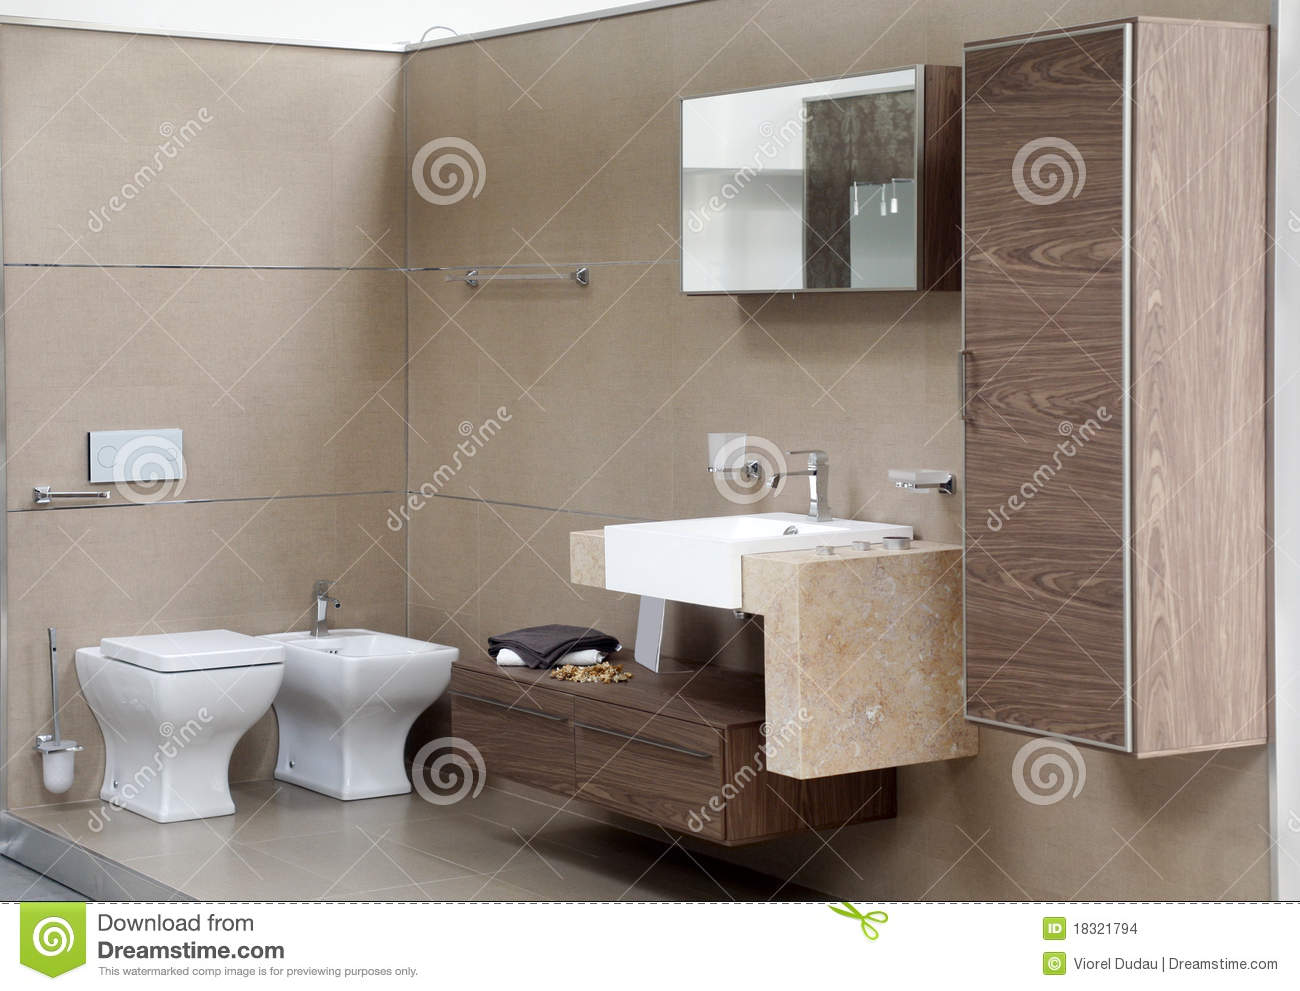 Back of toilet decor wooden decoration accessories tank ideas